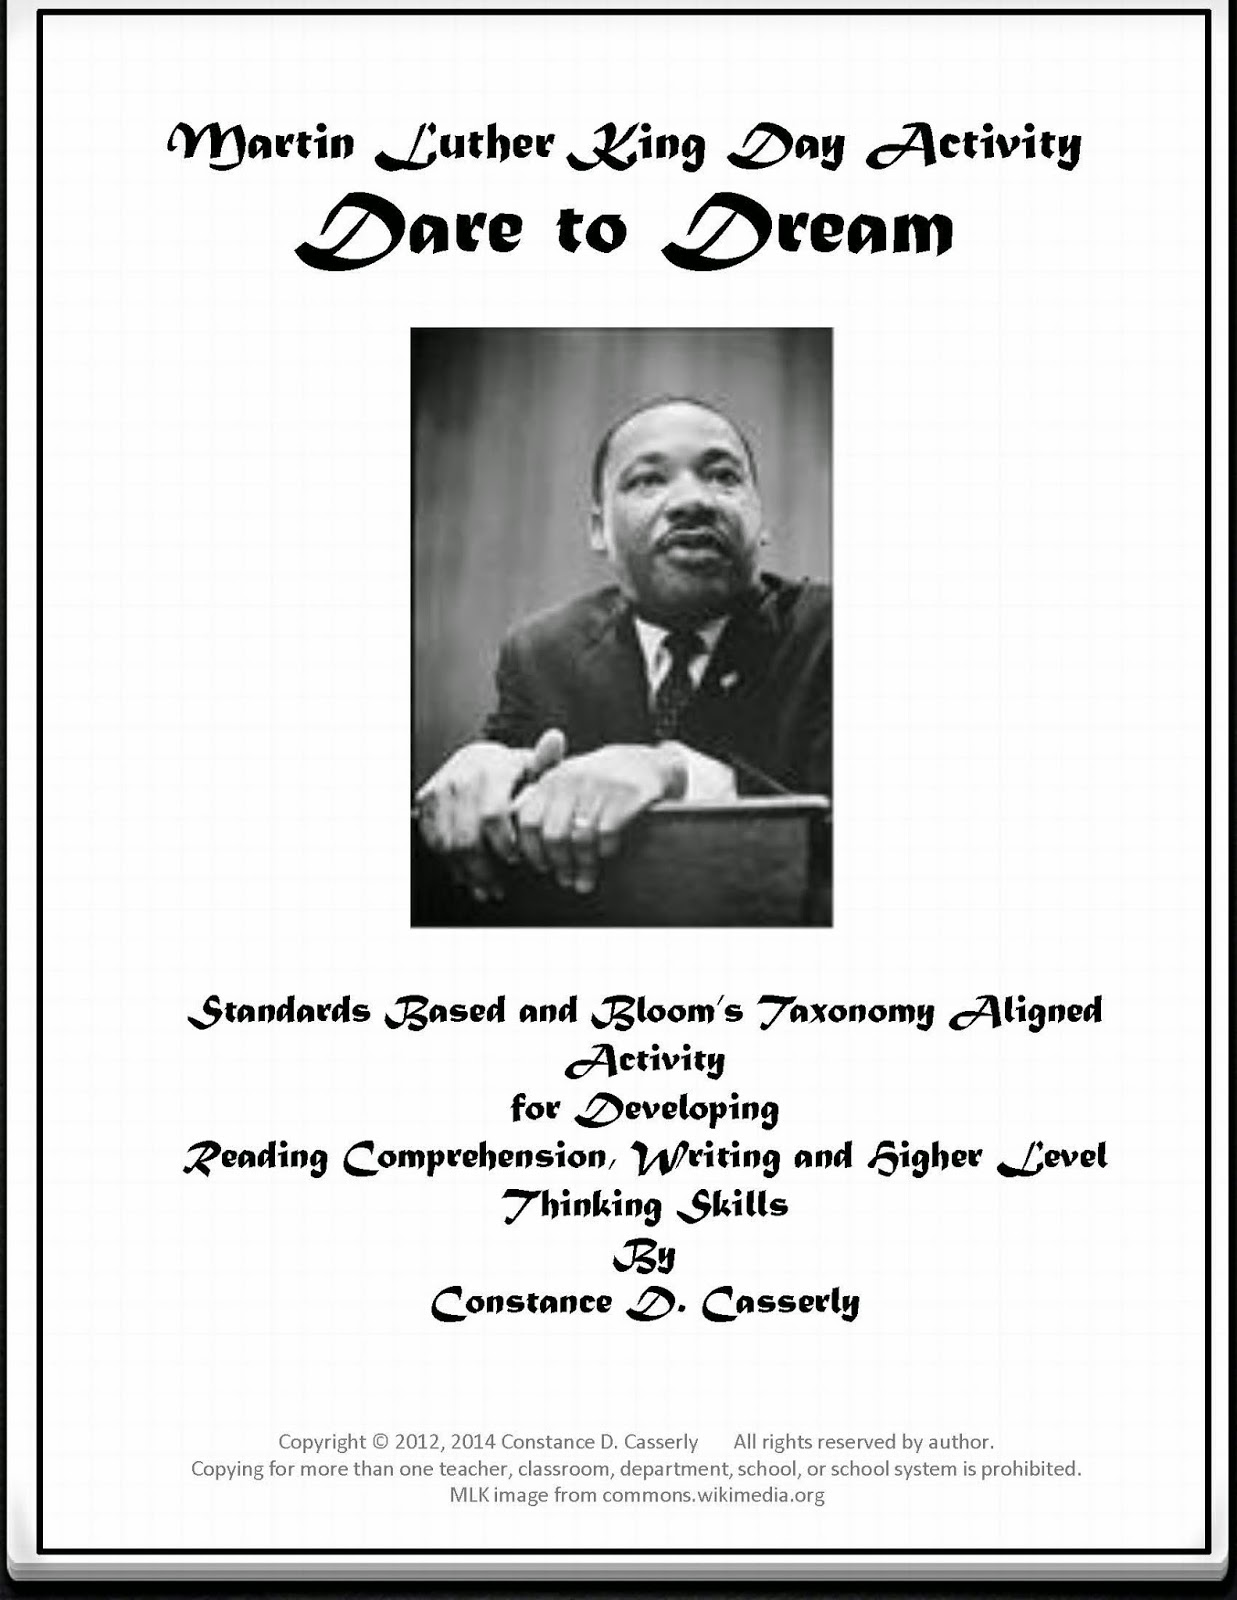 """Martin Luther King Day Activity - 'Dare to Dream'"""